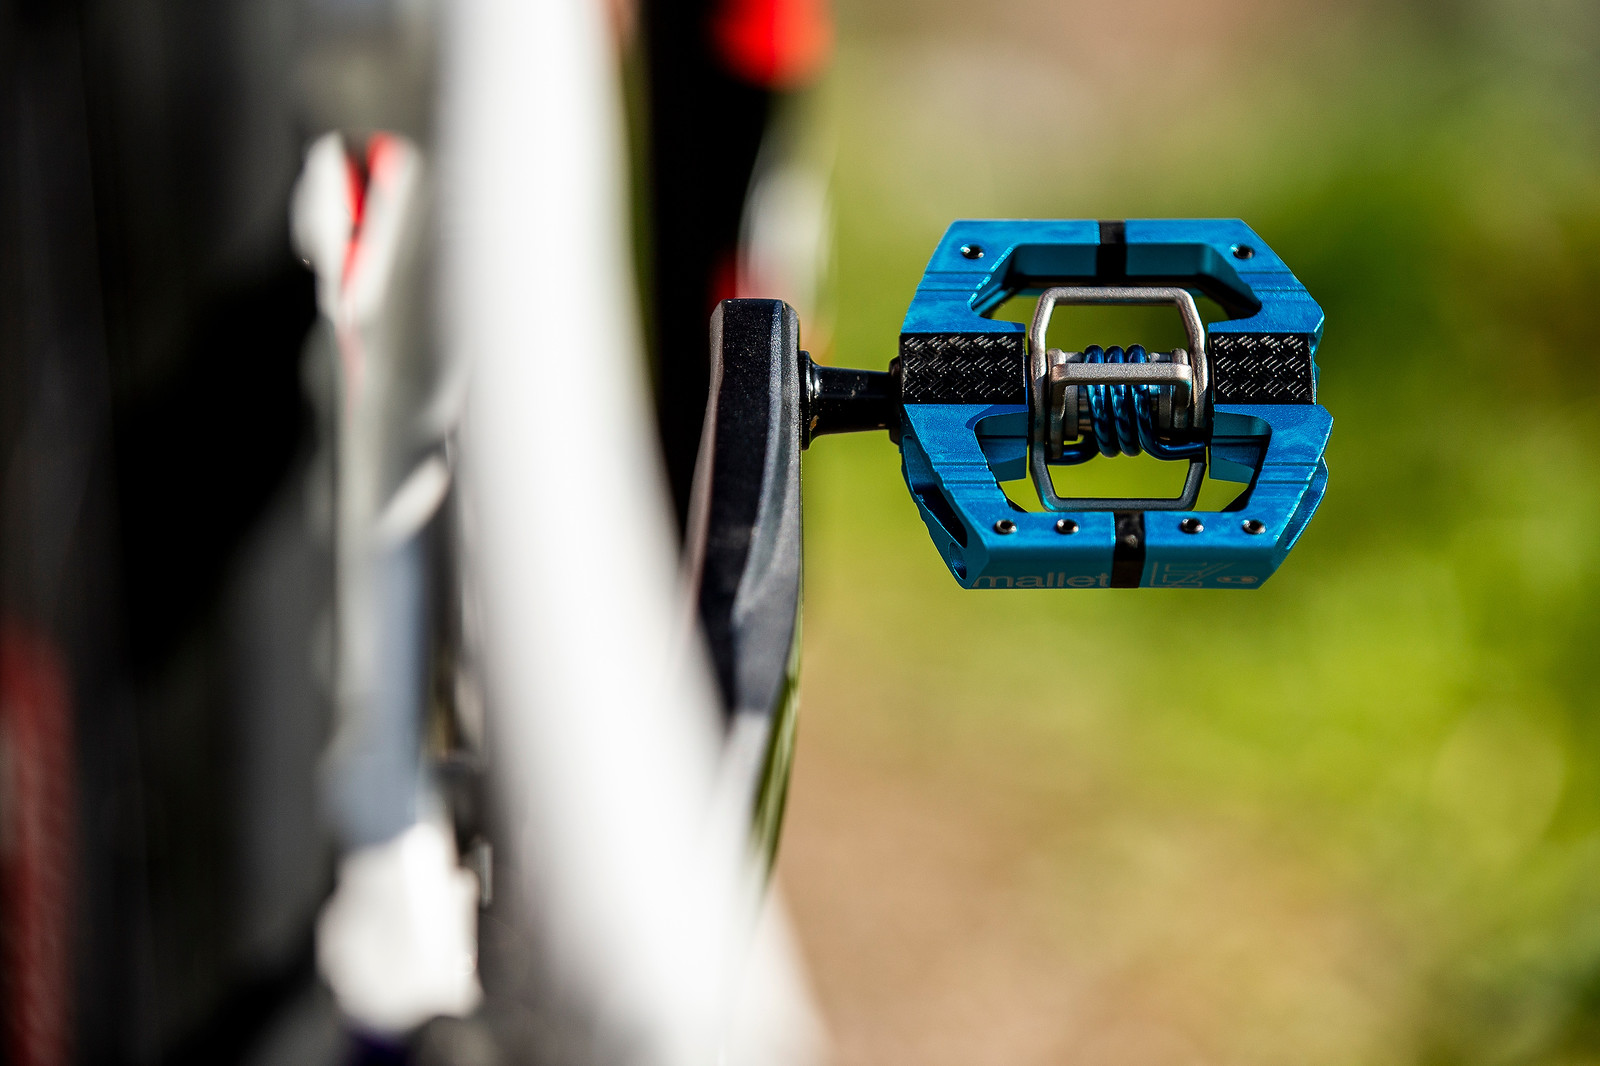 Crankbrothers Mallets - WORLD CHAMPS BIKE - Danny Hart's Saracen Myst - Mountain Biking Pictures - Vital MTB